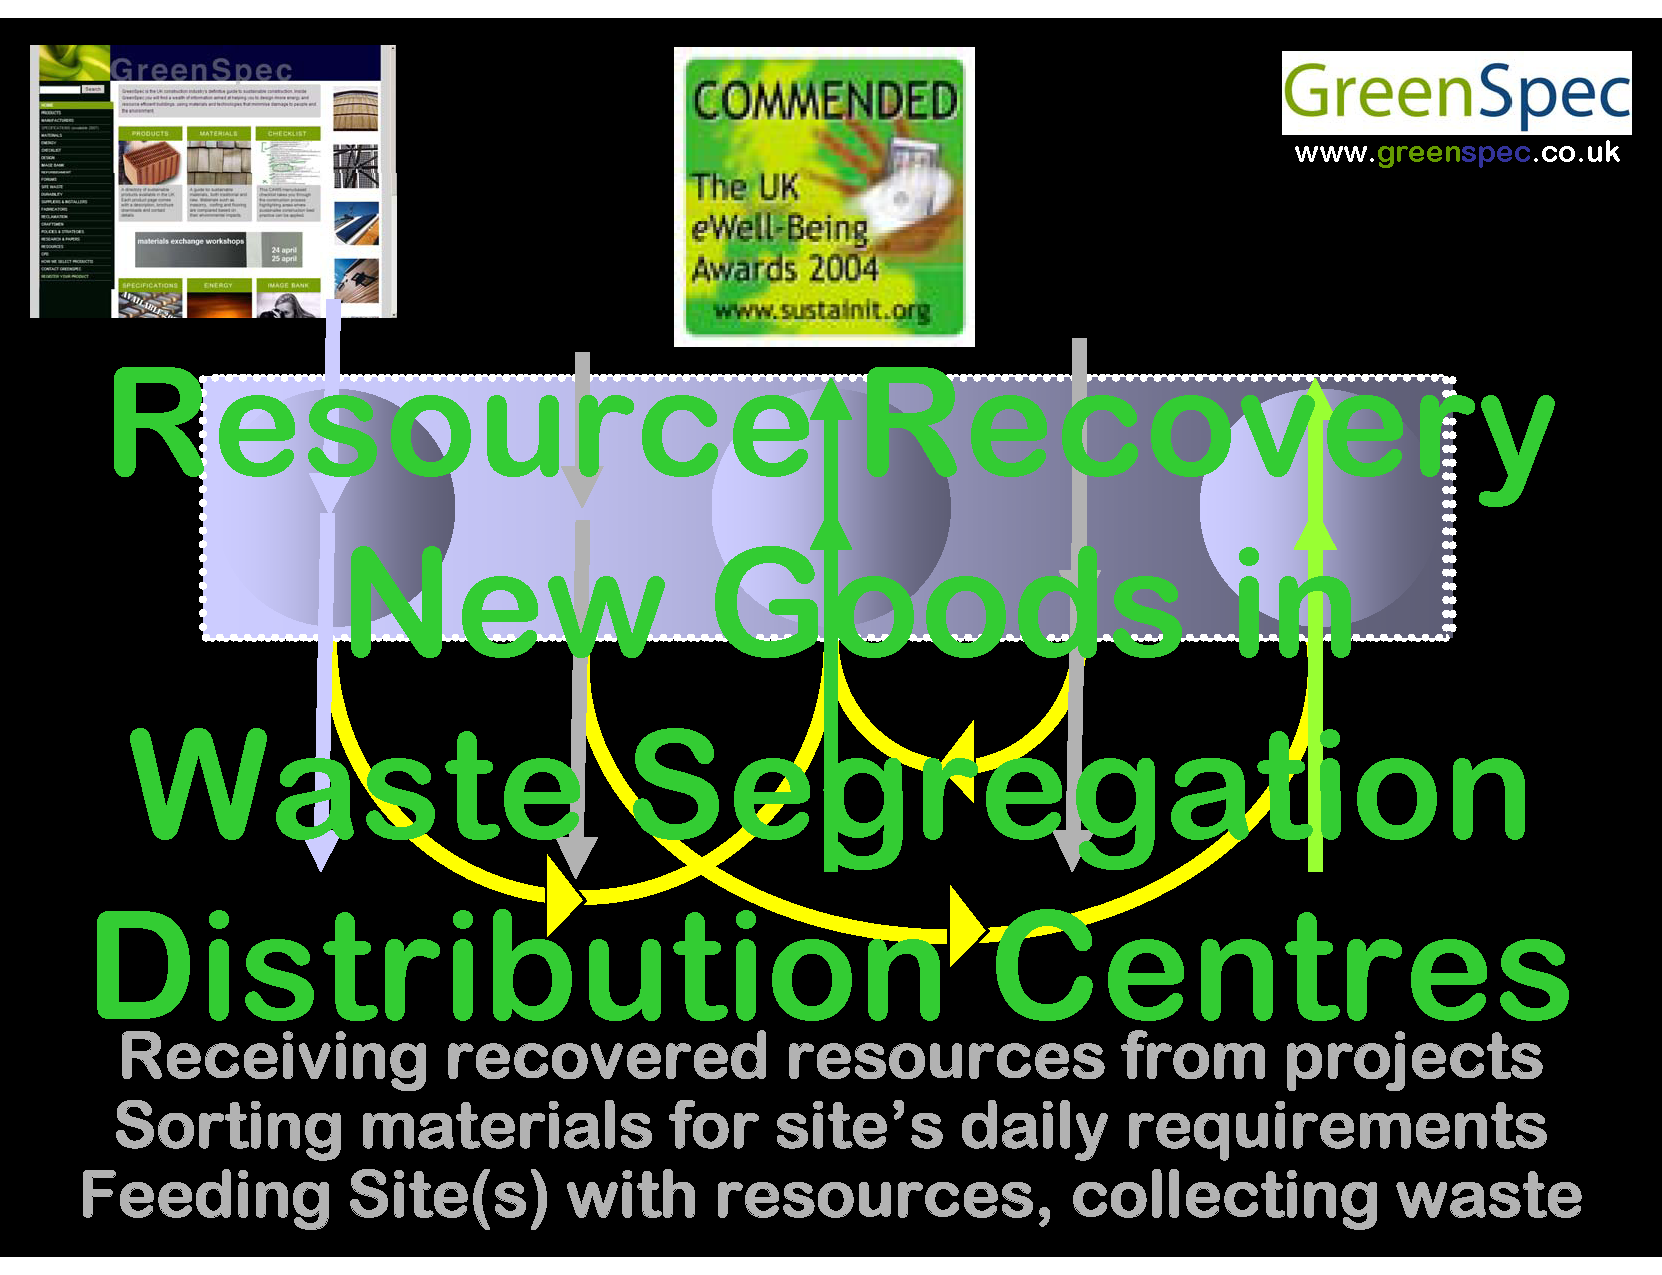 WasteDistributionCentre.png